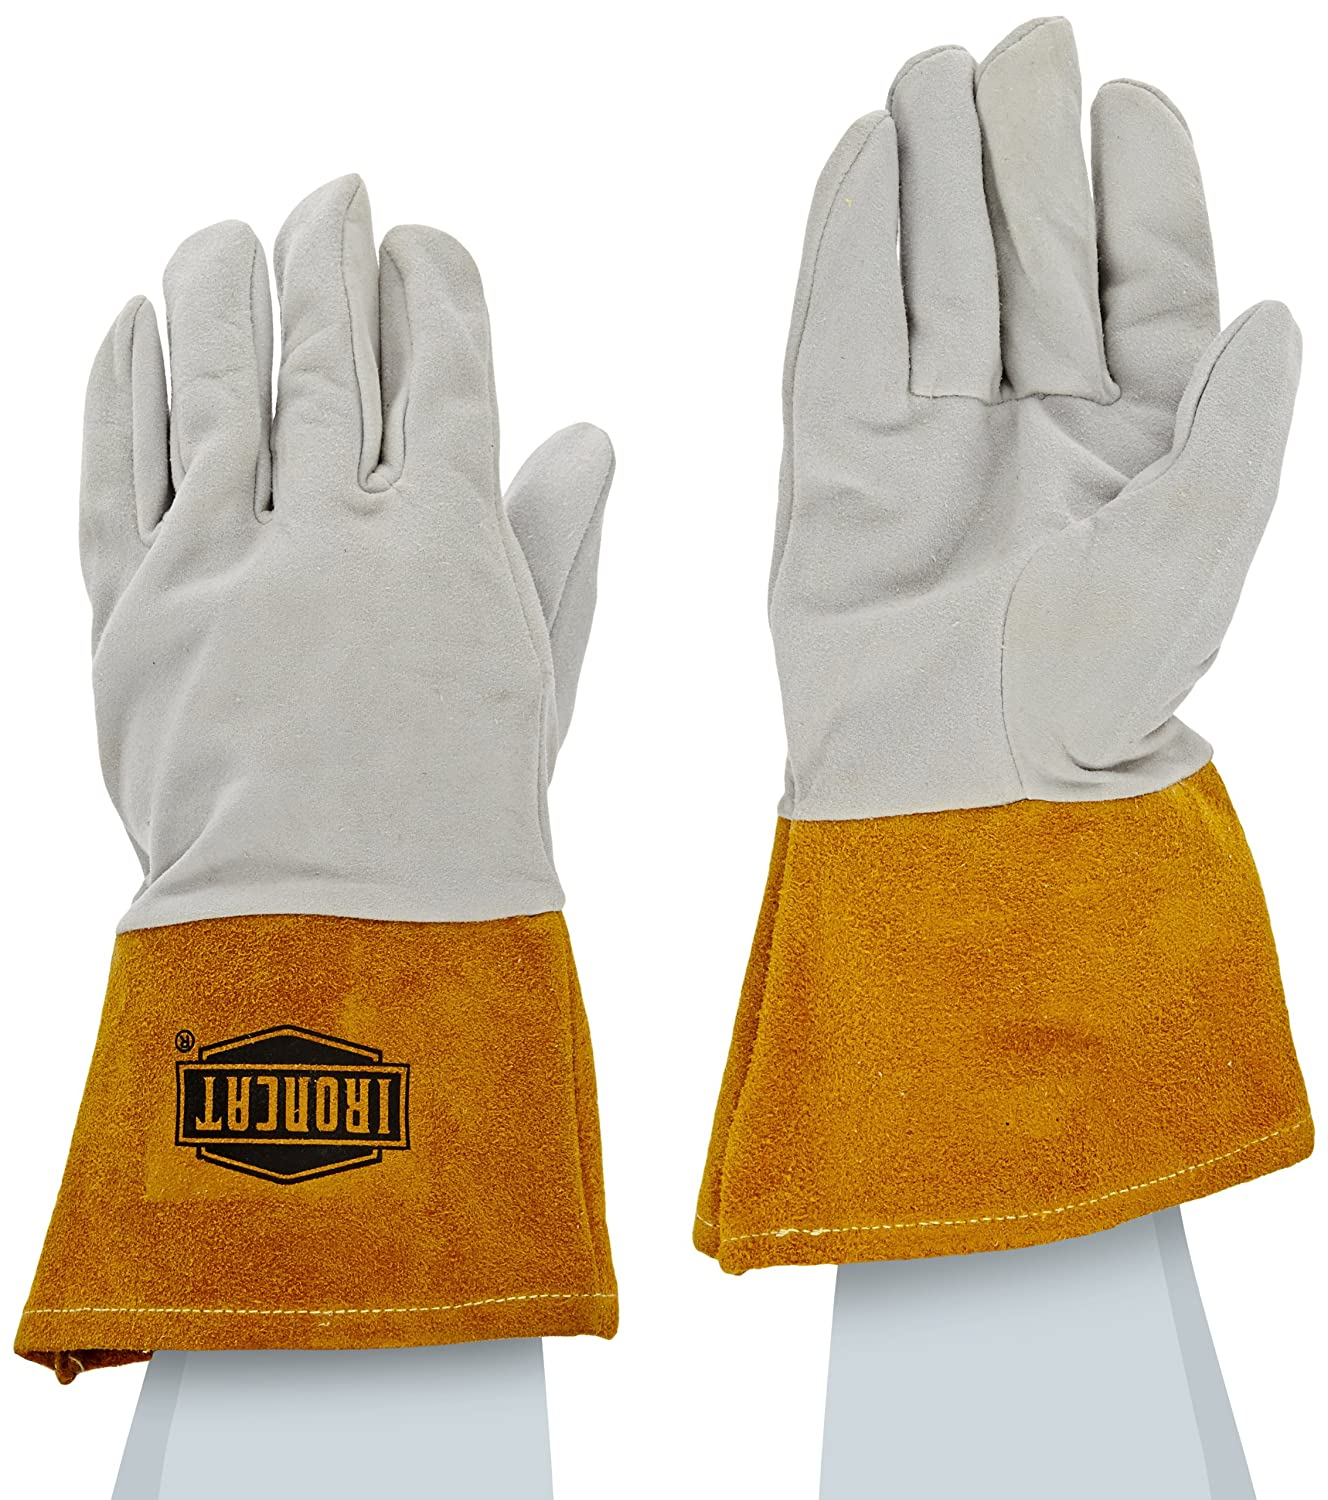 Leather work gloves for welding - Ironcat 6130 S Deerskin Leather Tig Welding Glove With 4 Split Cowhide Cuff Small Pearl Pack Of 1 Pair Welding Safety Gloves Amazon Com Industrial